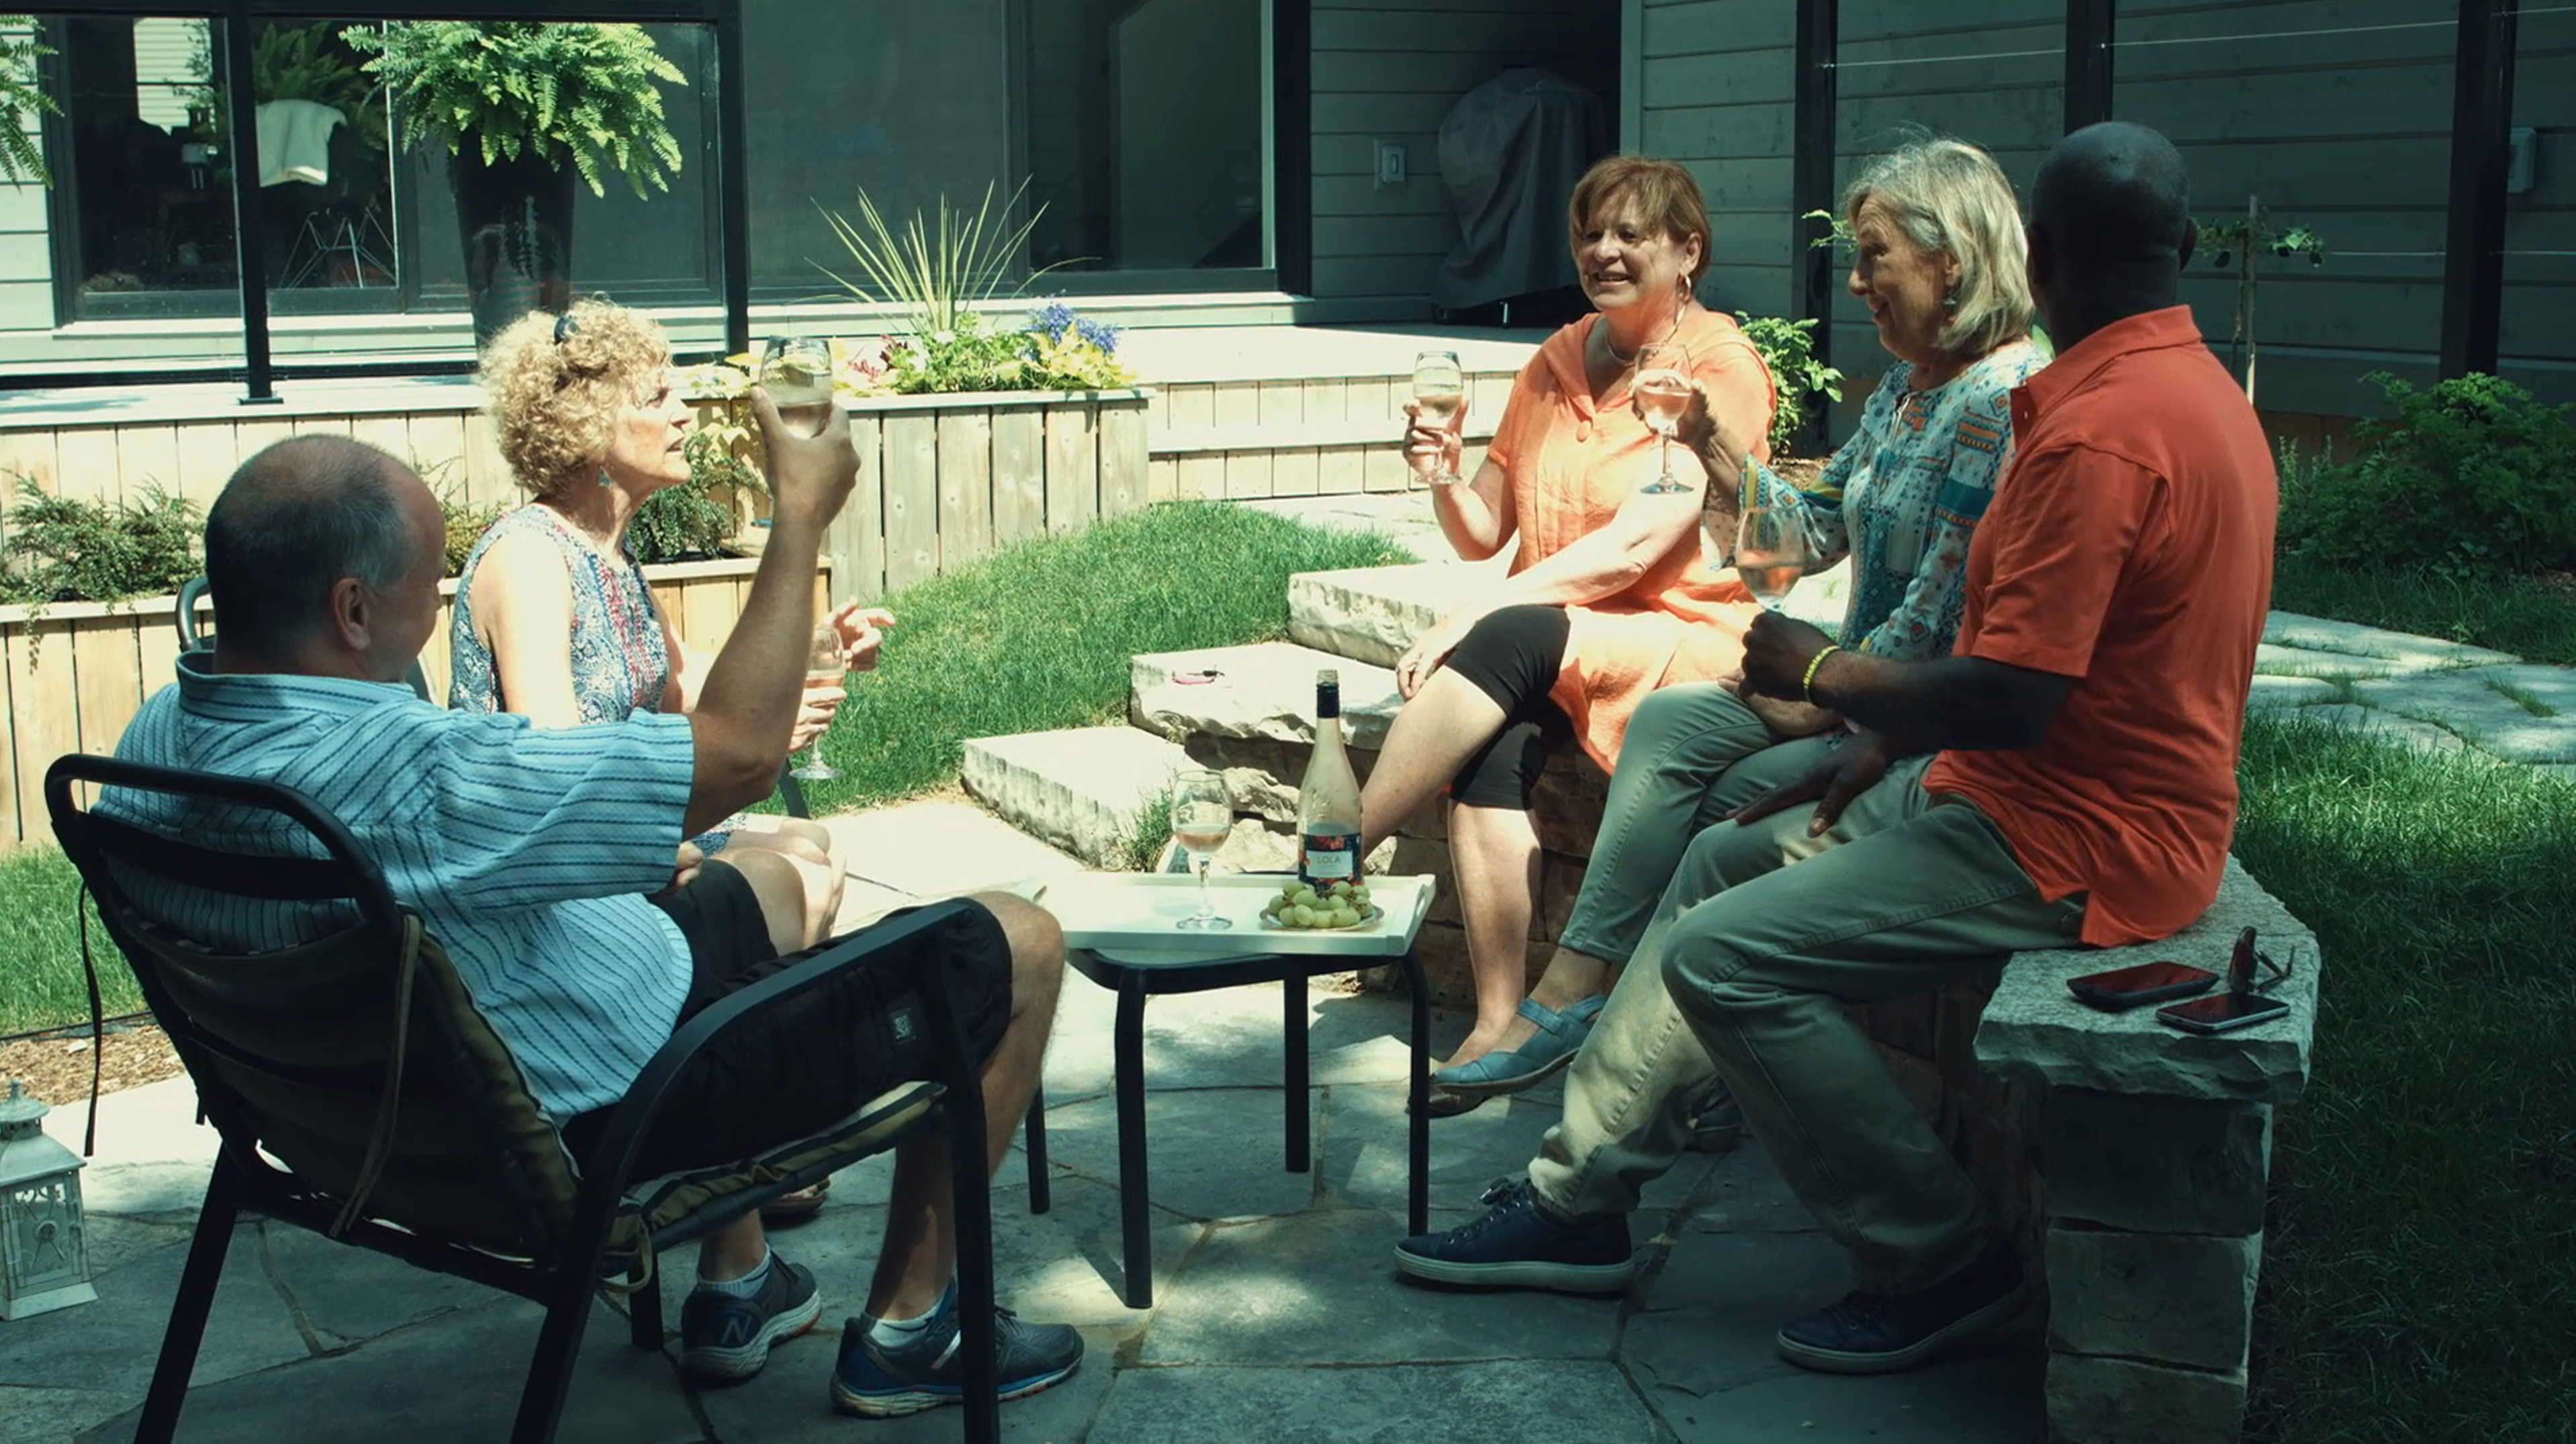 A group of adults drinking wine outdoors